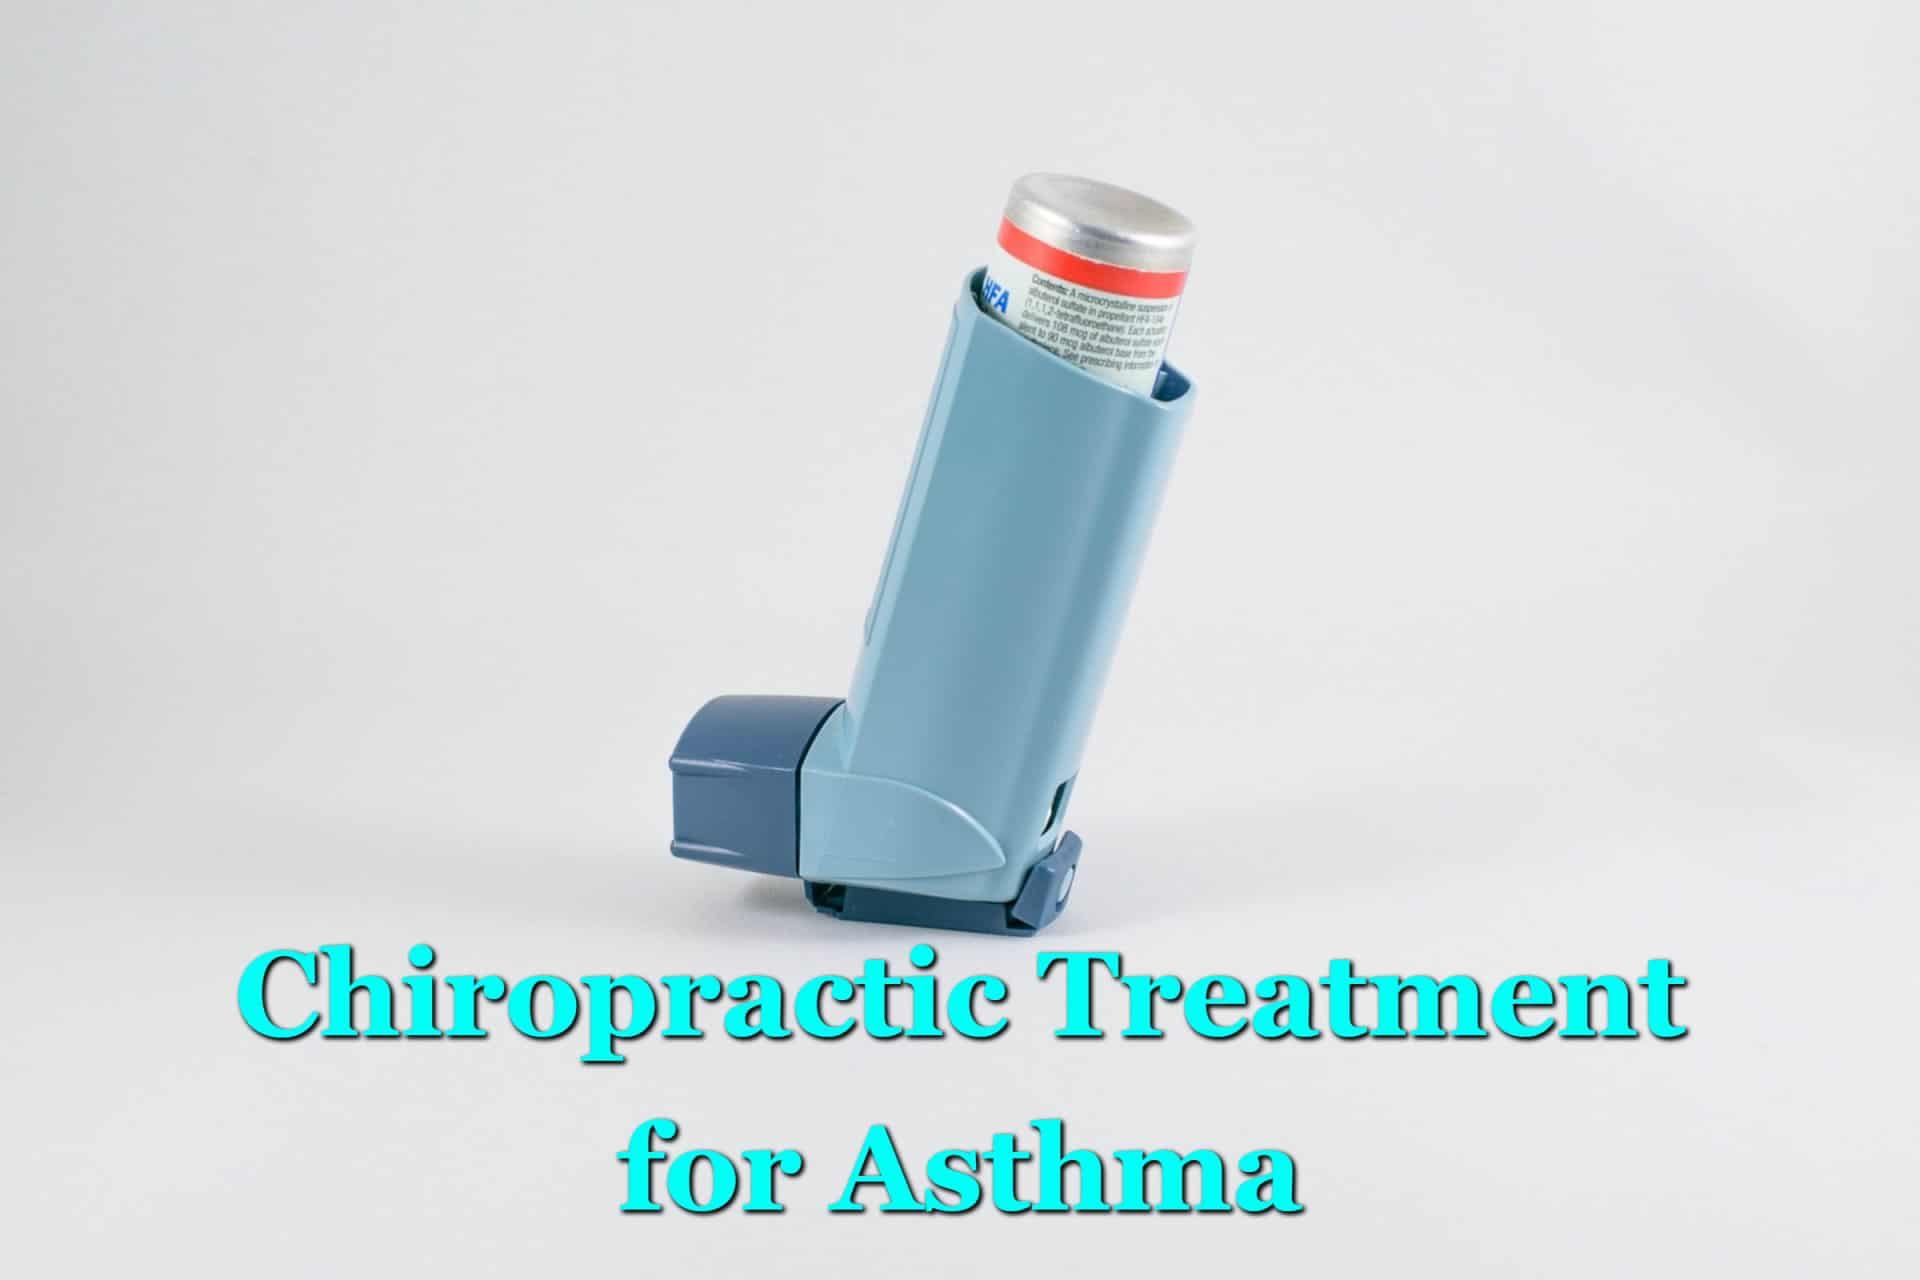 Breathe Easier with Chiropractic Treatment for Asthma